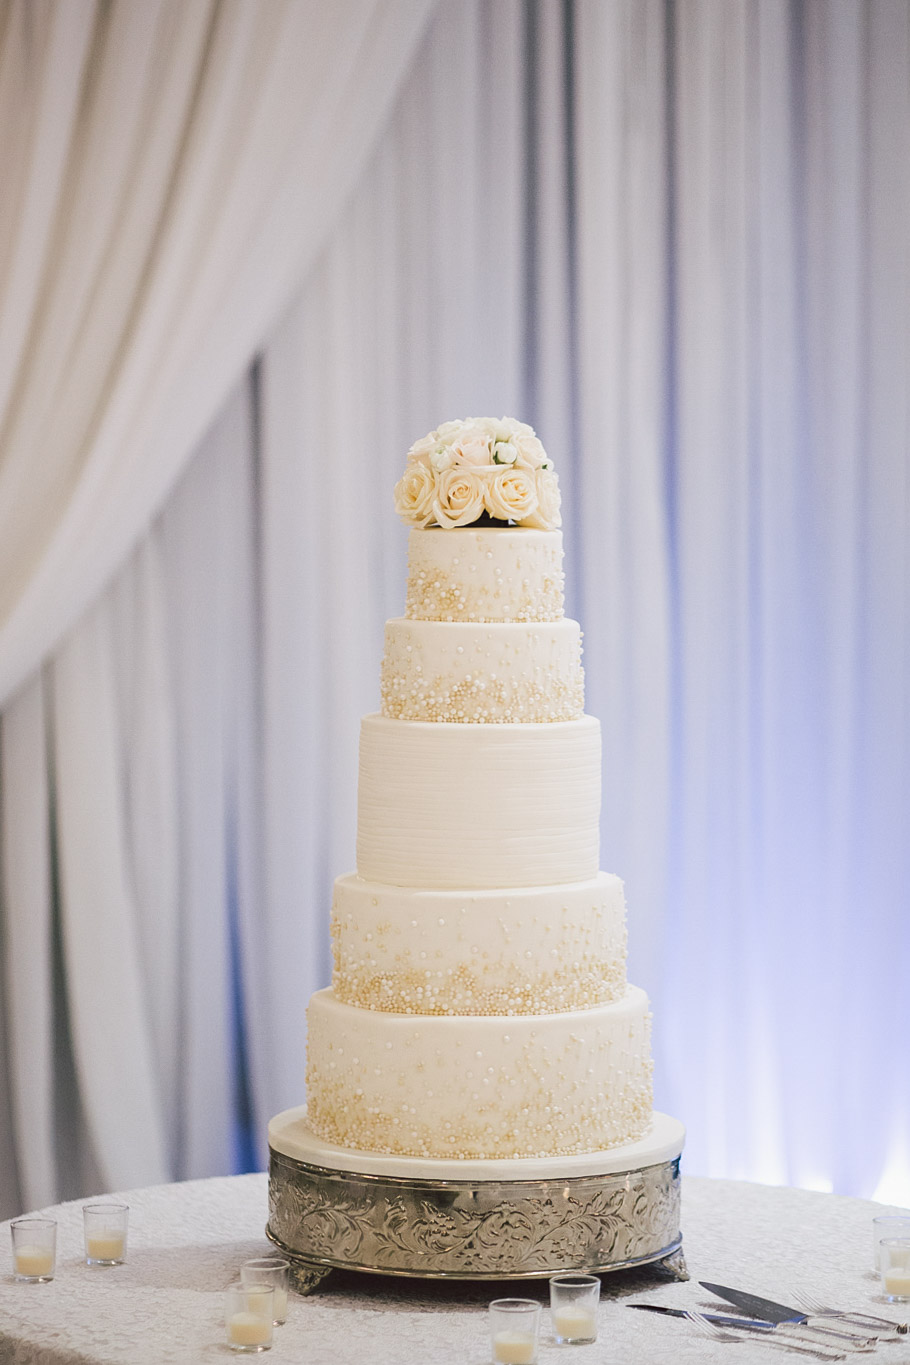 hazelton manor cake